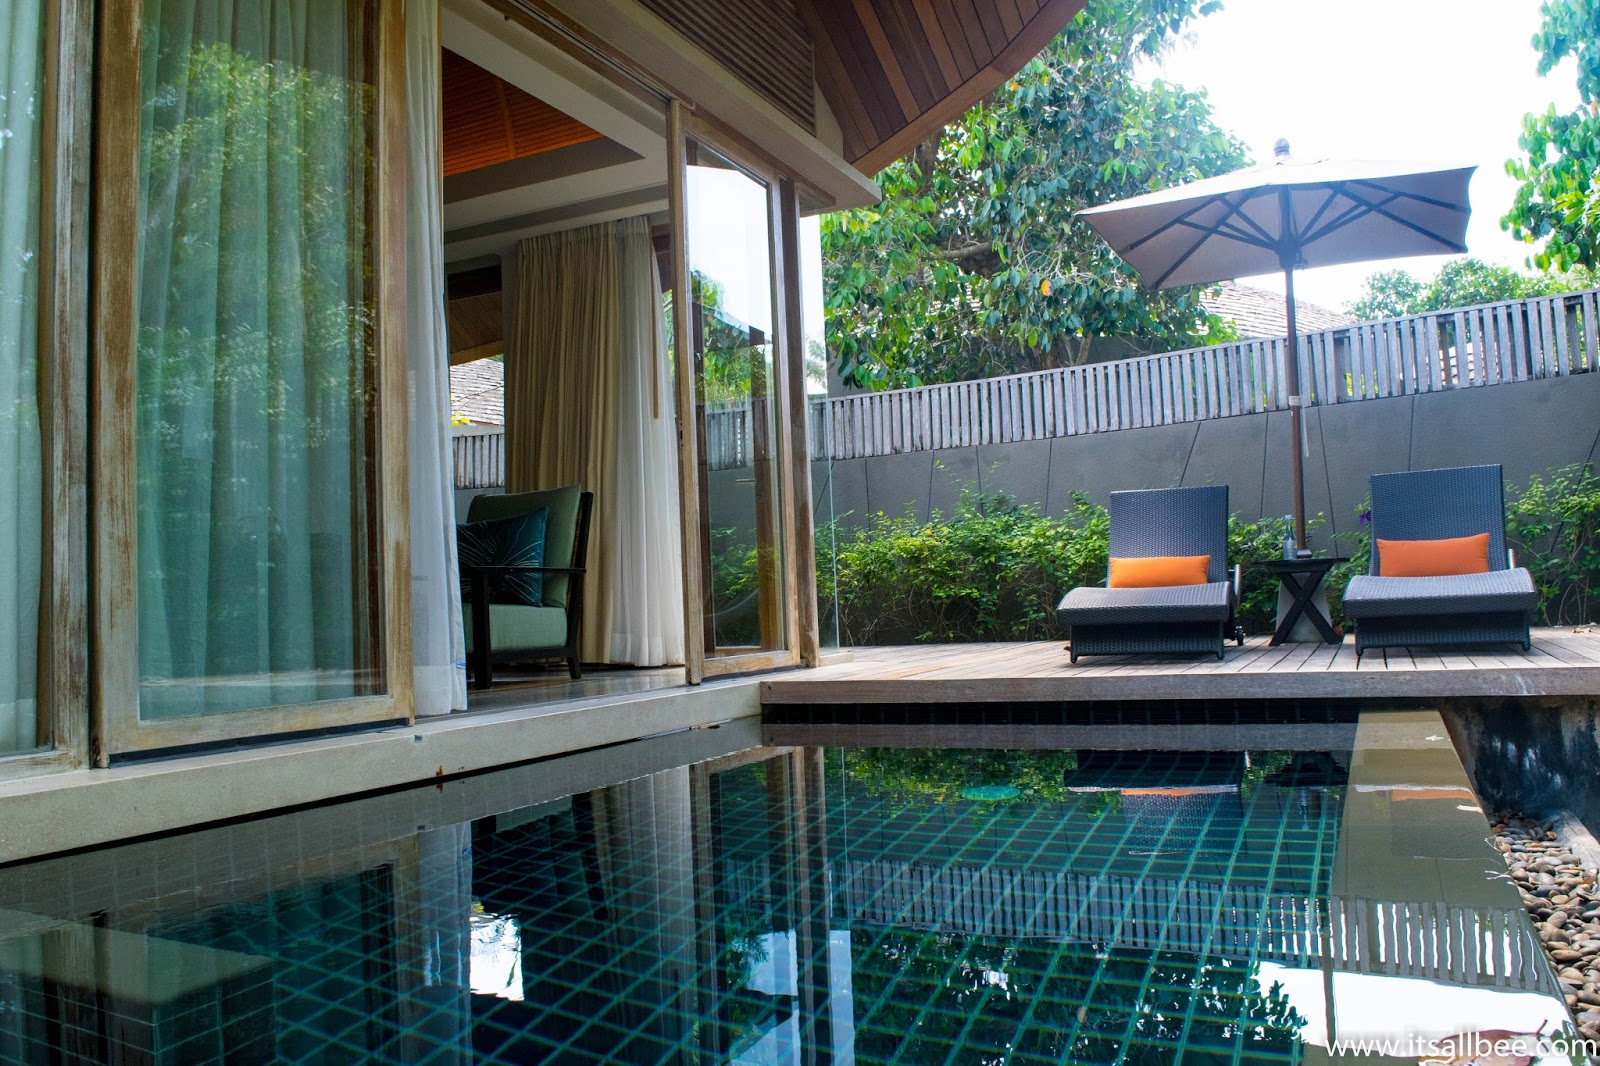 Luxury Hotels in Thailand - Things to do in Phuket | 10 Experiences You Need To Have In Phuket